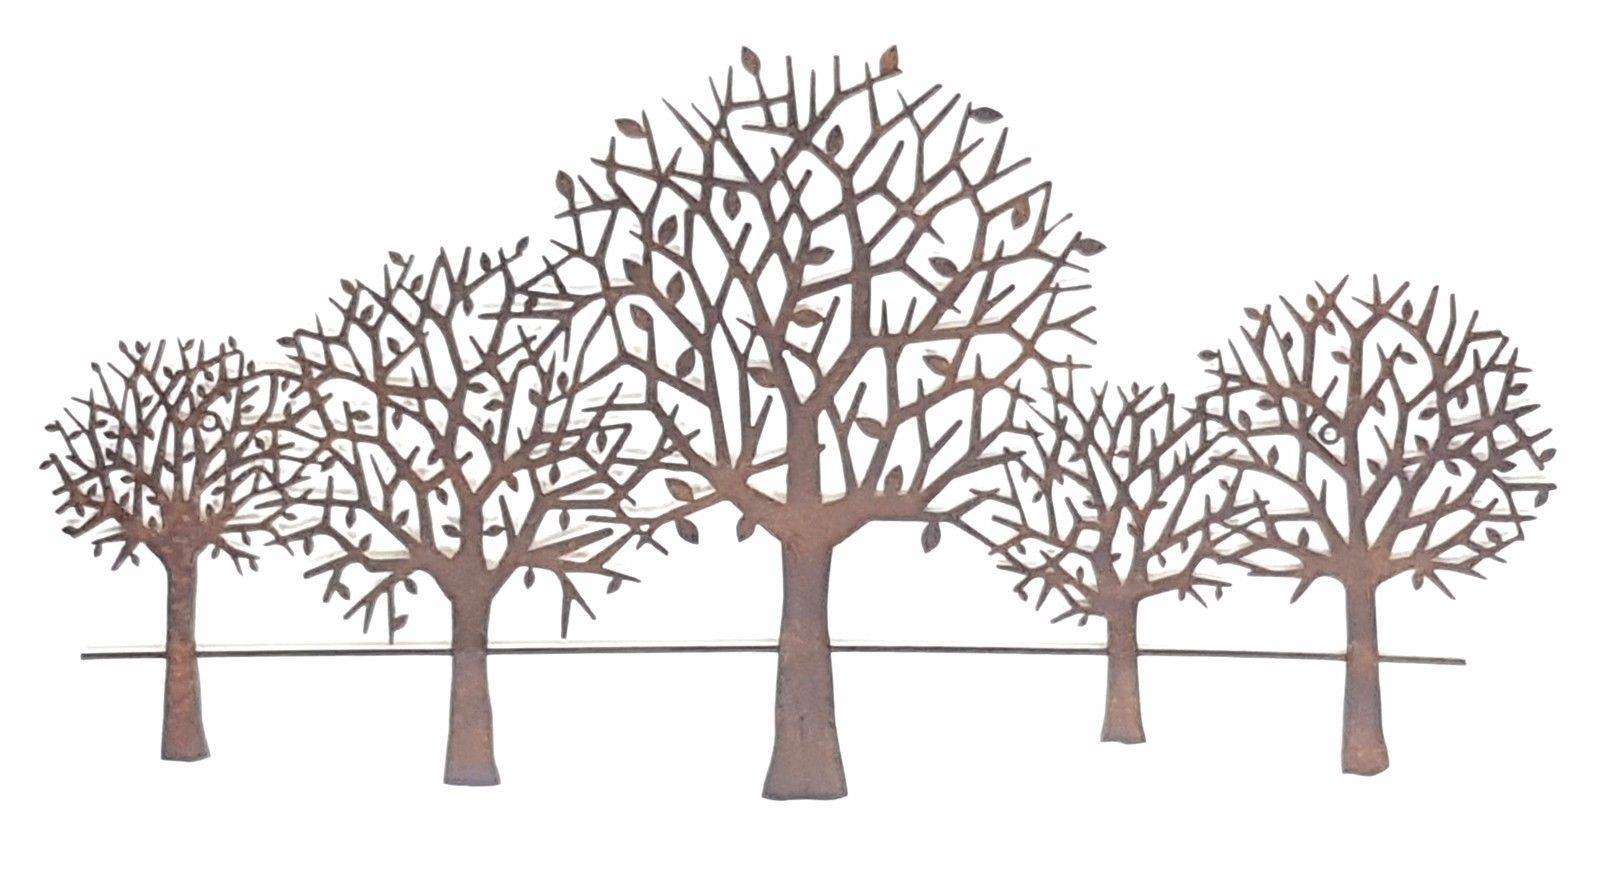 Wall Art Designs: Metal Wall Art Trees Tree Scenery Metal Hanging Inside Current Tree Sculpture Wall Art (View 17 of 20)